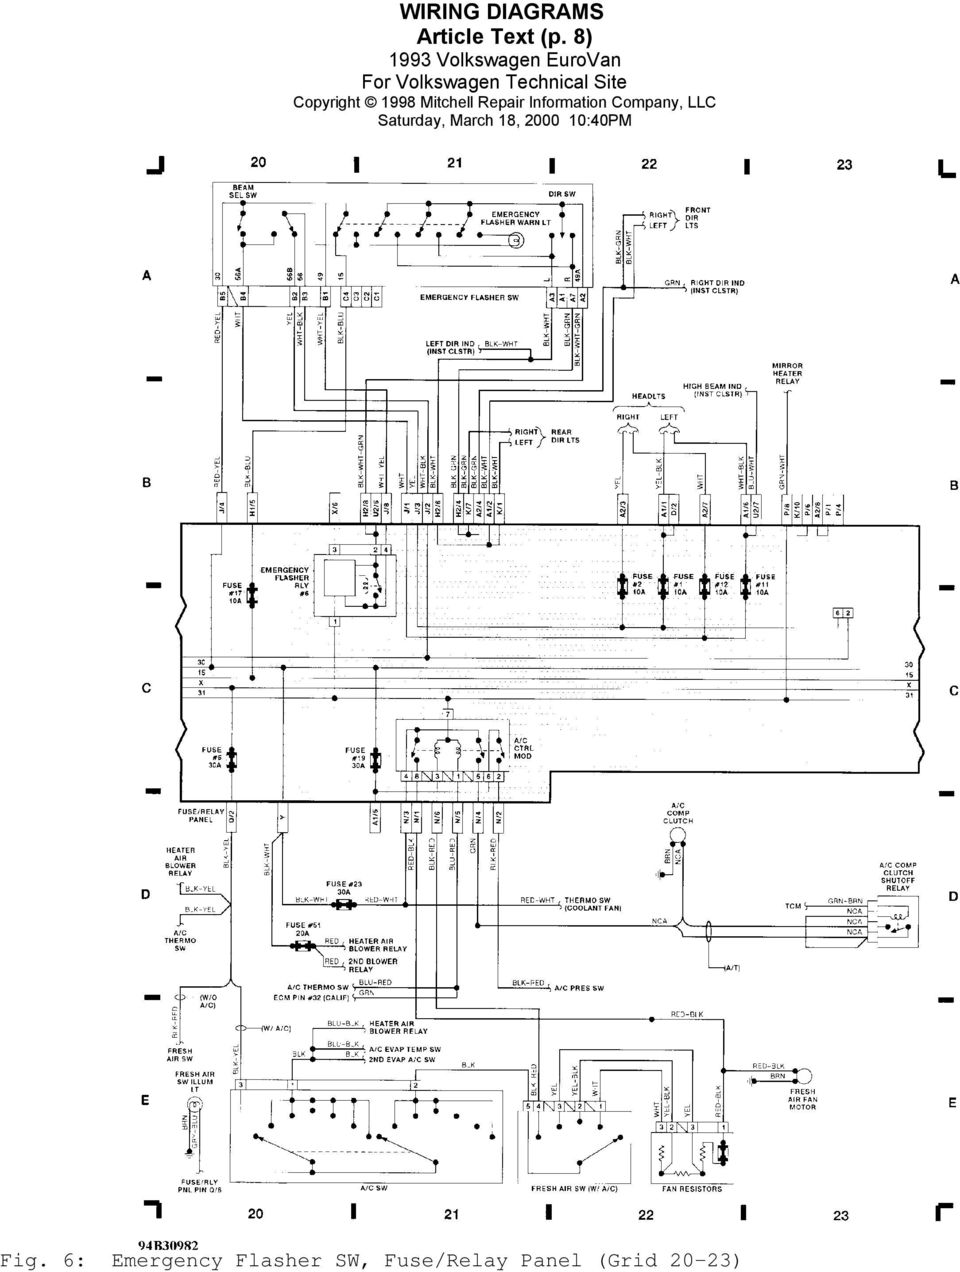 [WRG-3991] 2001 Eurovan Alternator Wiring Diagram